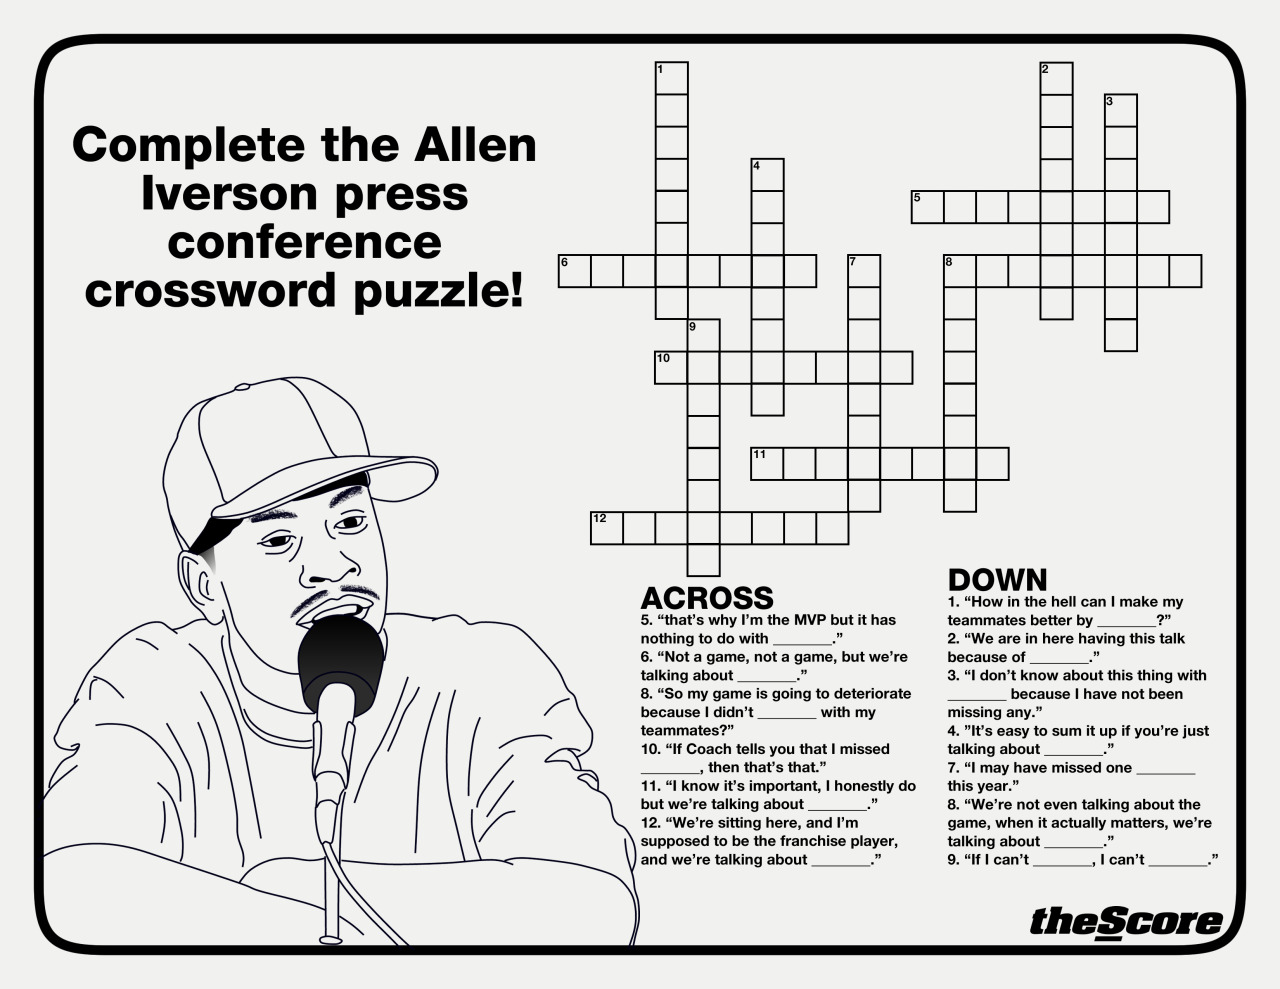 Photo: The Allen Iverson Crossword Puzzle. Just one of the many awesome activities in the 2012 theScore Sports Activity Book. You can see it all here. Or download the PDF here.